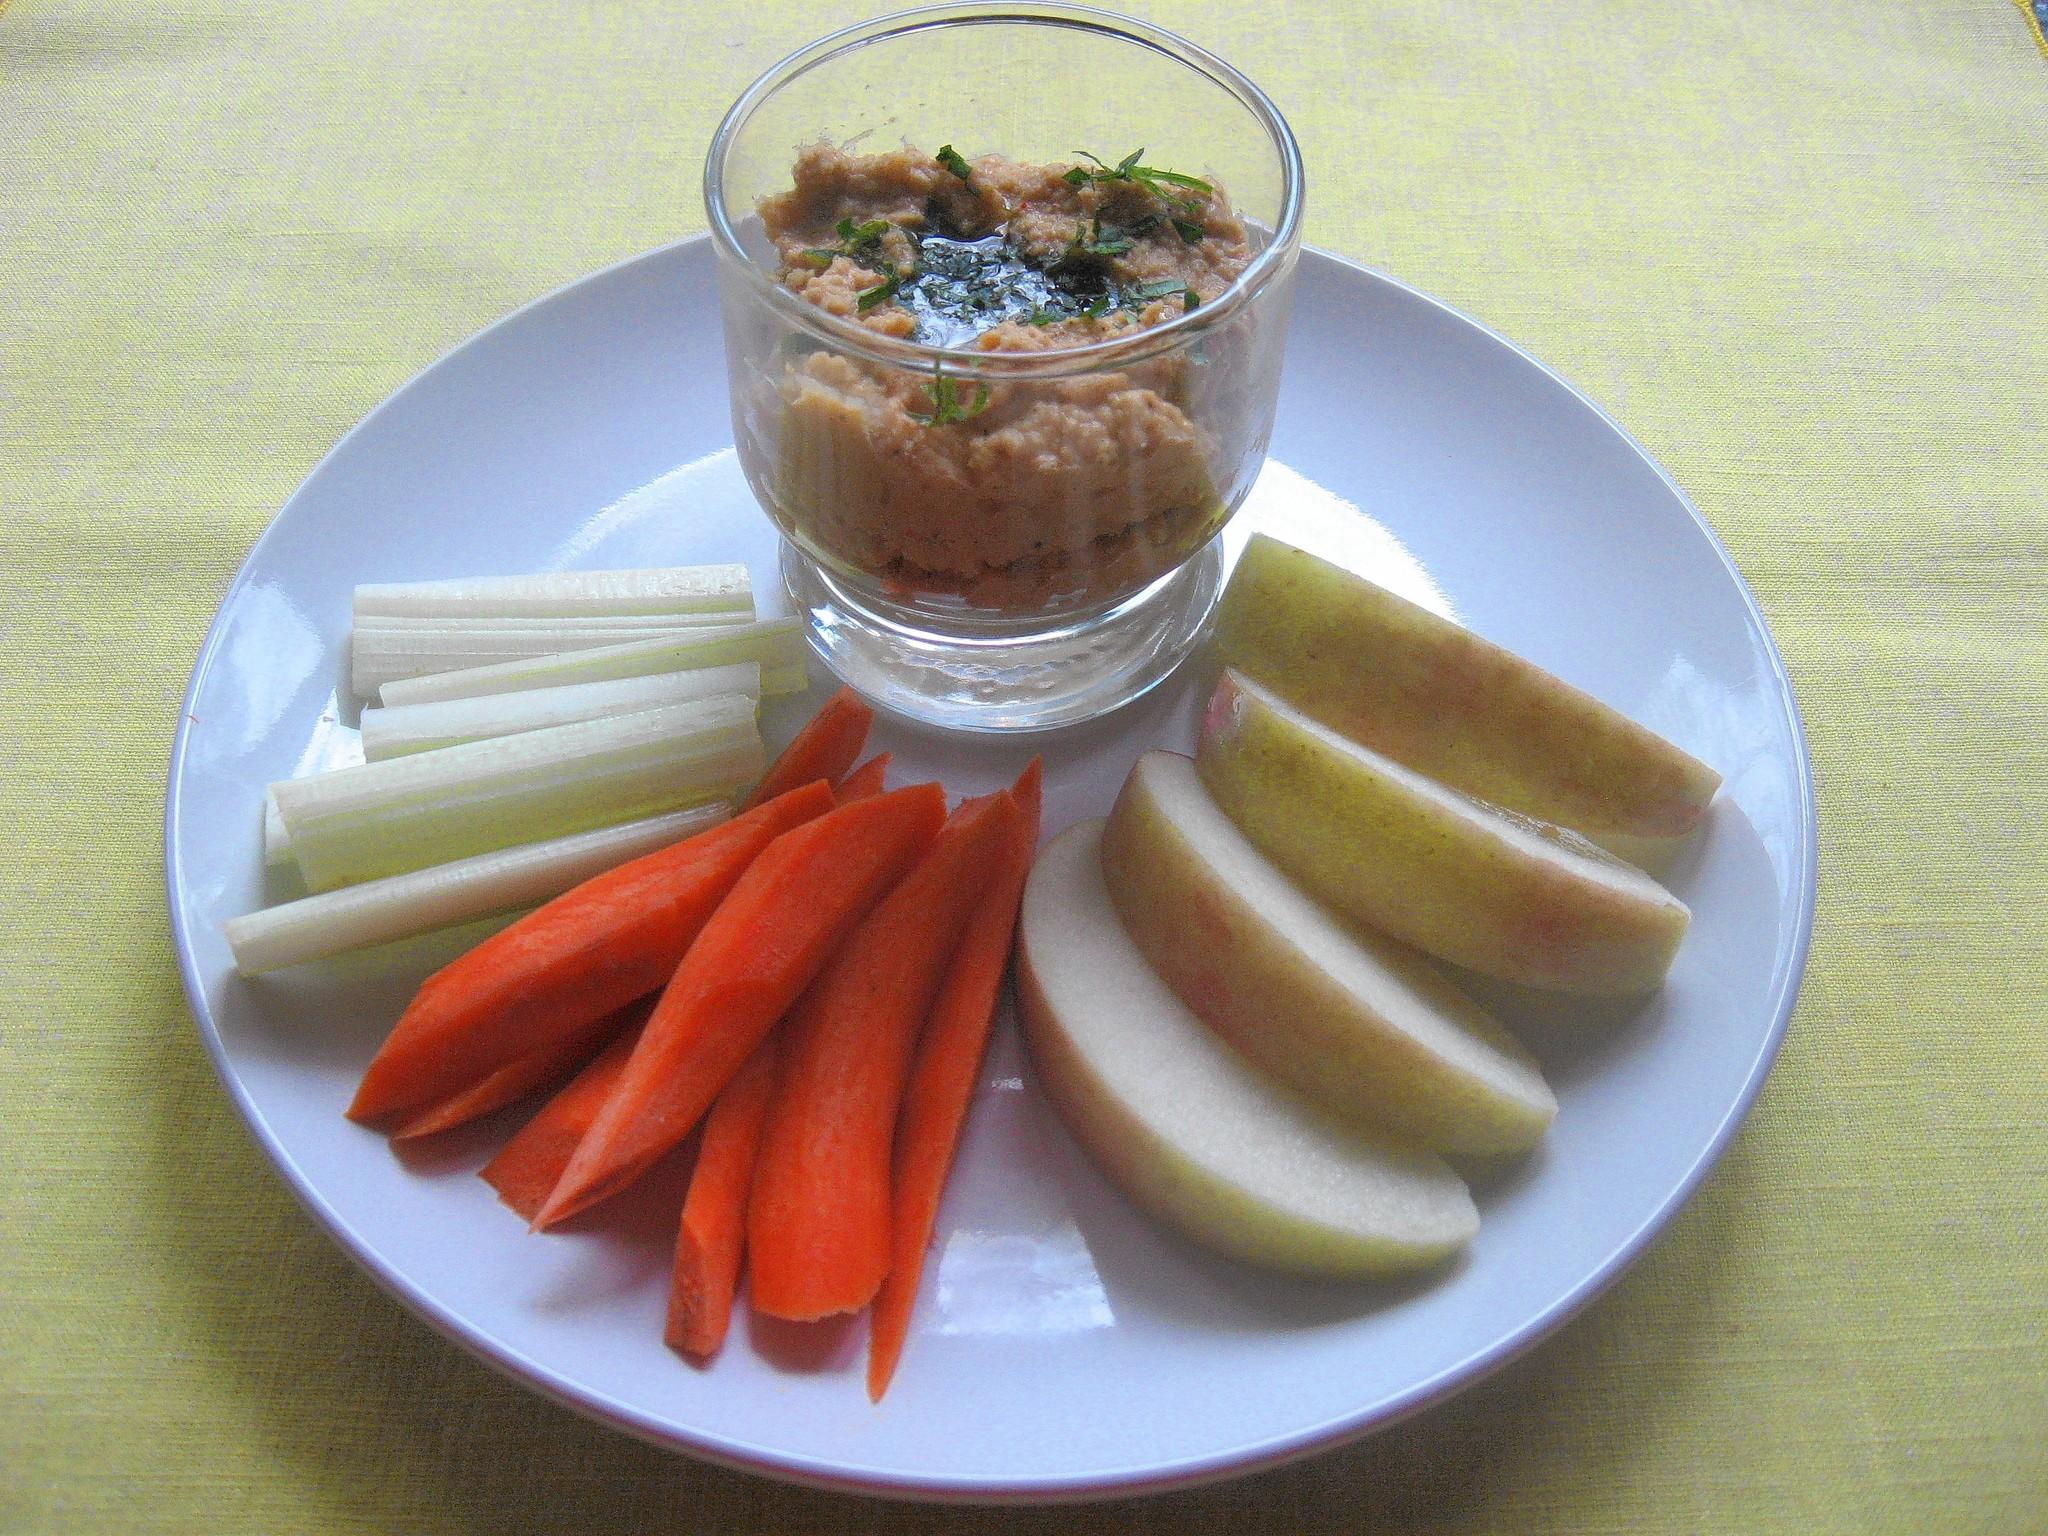 Prepared hummus is now infused with all sorts of flavorings, from lemon juice or roasted red peppers to spice blends, and even peanut butter.